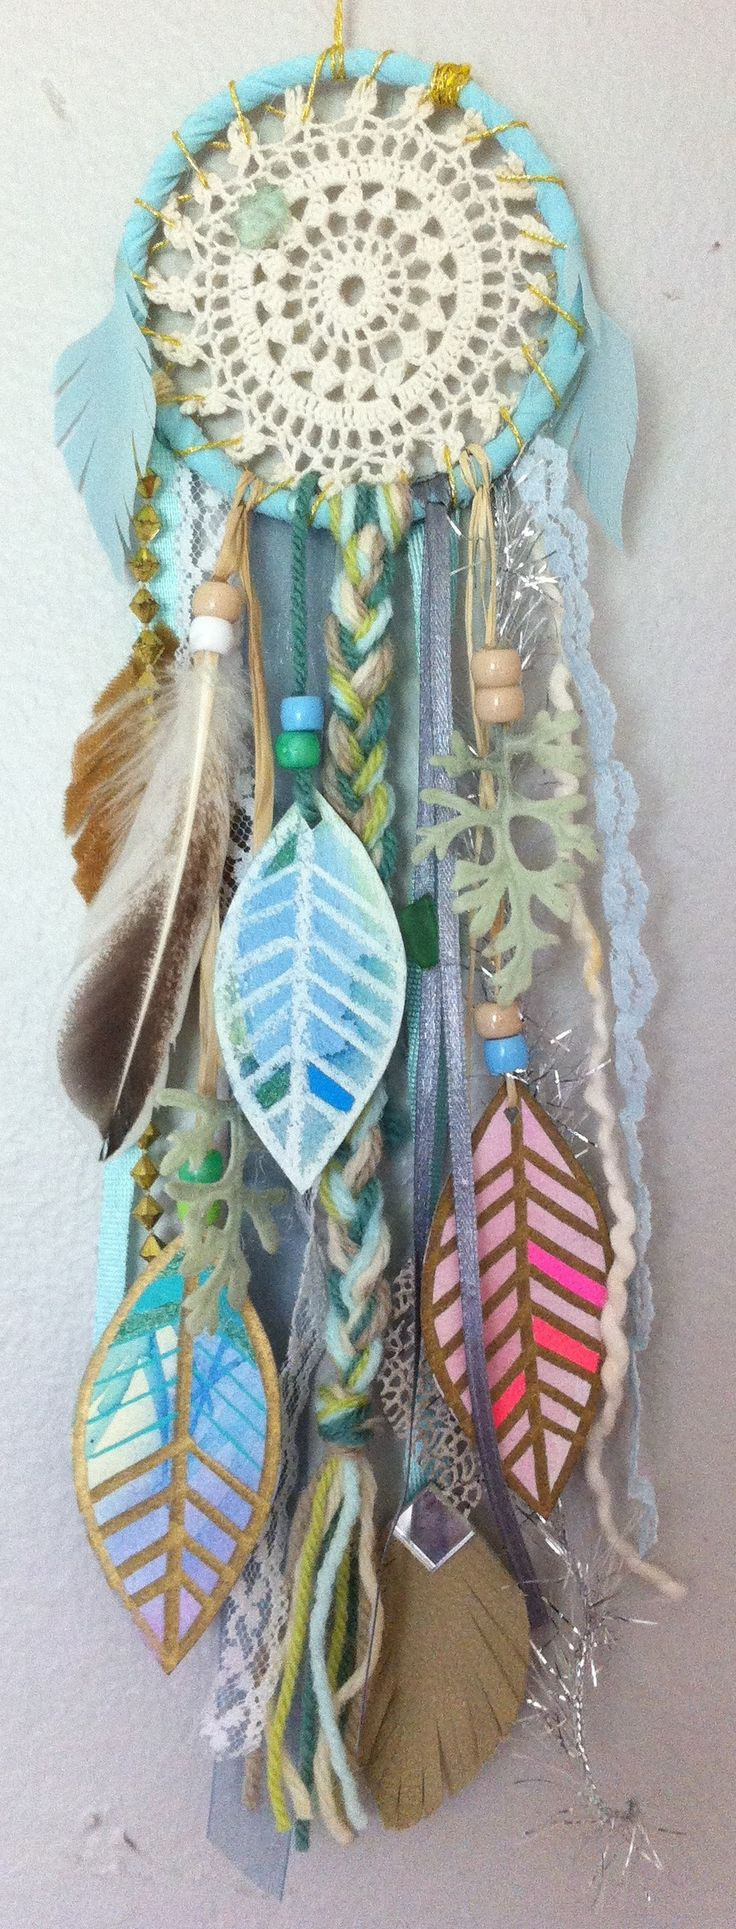 mini dreamcatcher by rachael rice with watercolor feathers https://www.etsy.com/listing/152195304/aqua-dream-little-dreamcatcher-with  #aqua #turquoise #vintage